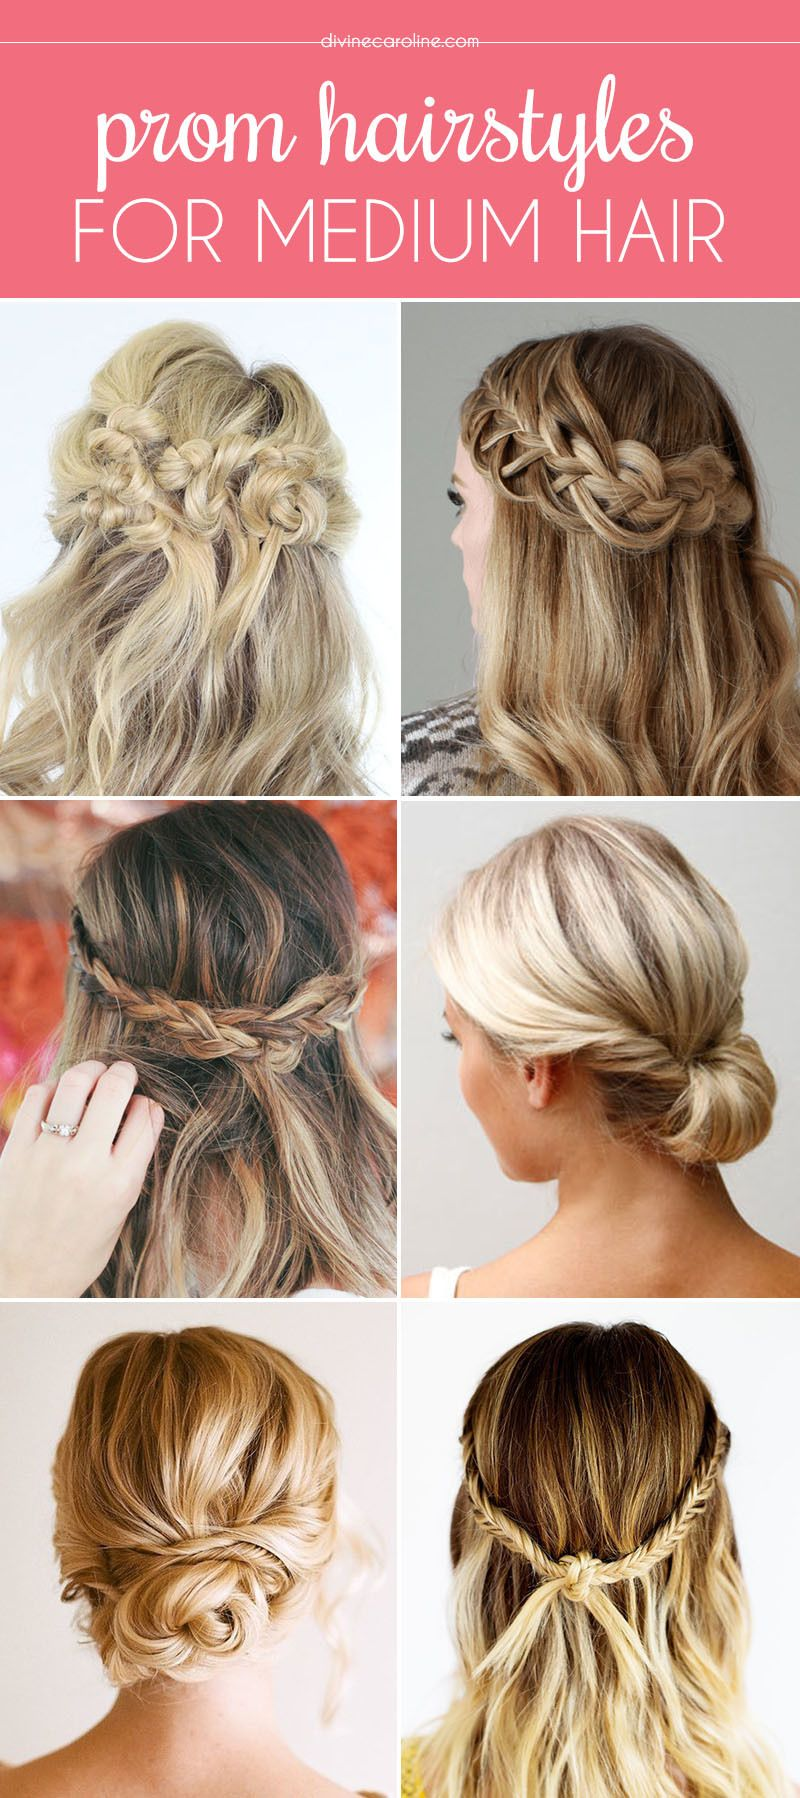 French Hairstyles Magnificent Our Favorite Prom Hairstyles For Mediumlength Hair  French Braid